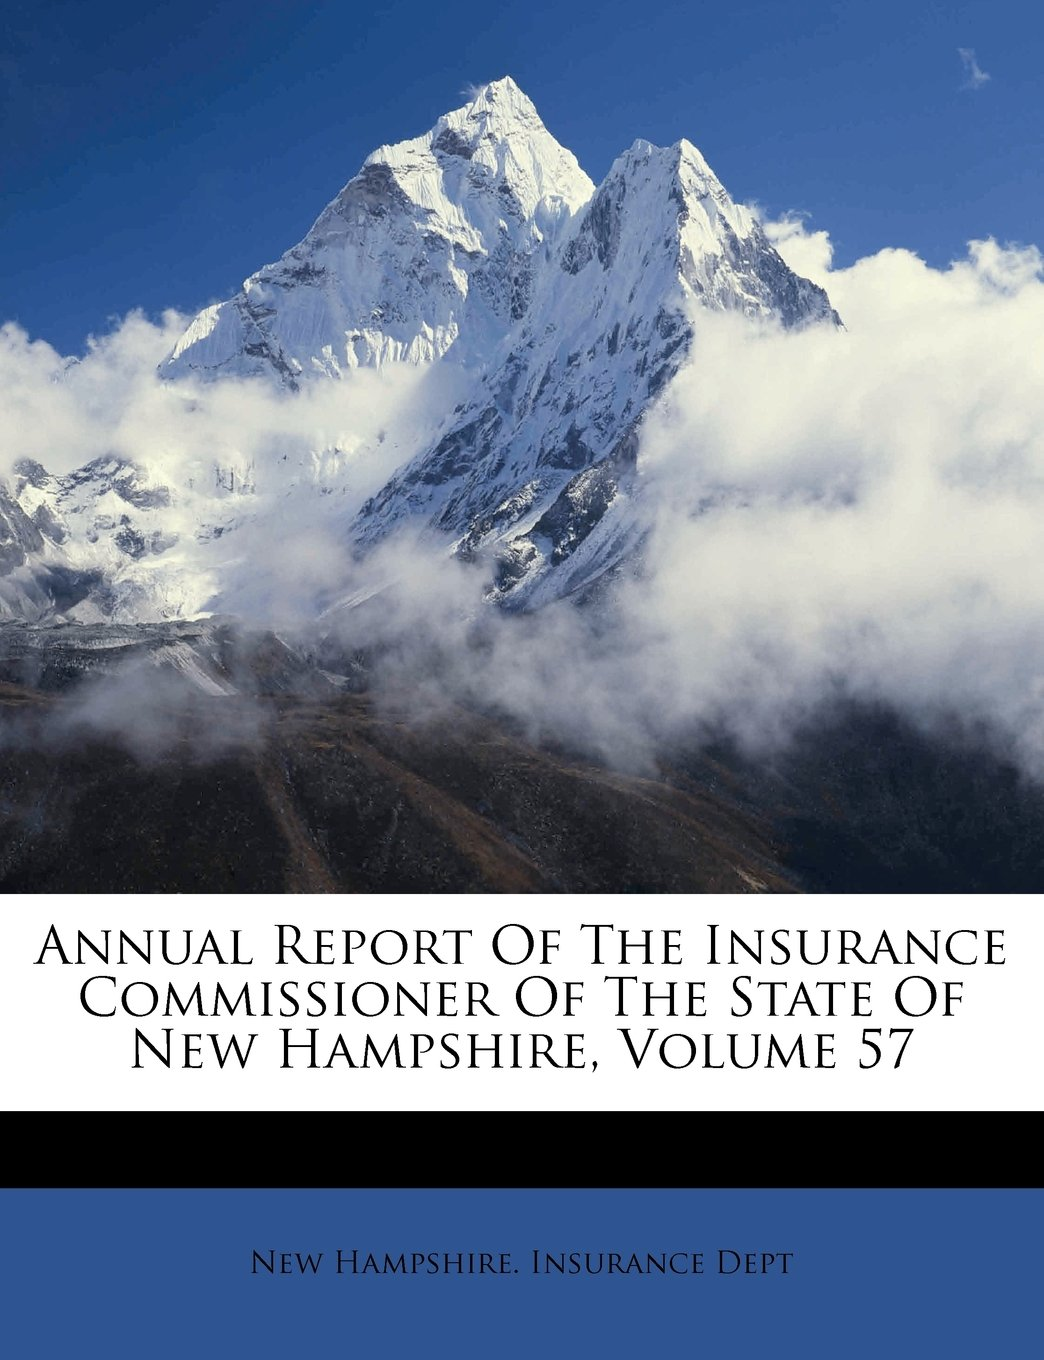 Annual Report Of The Insurance Commissioner Of The State Of New Hampshire, Volume 57 pdf